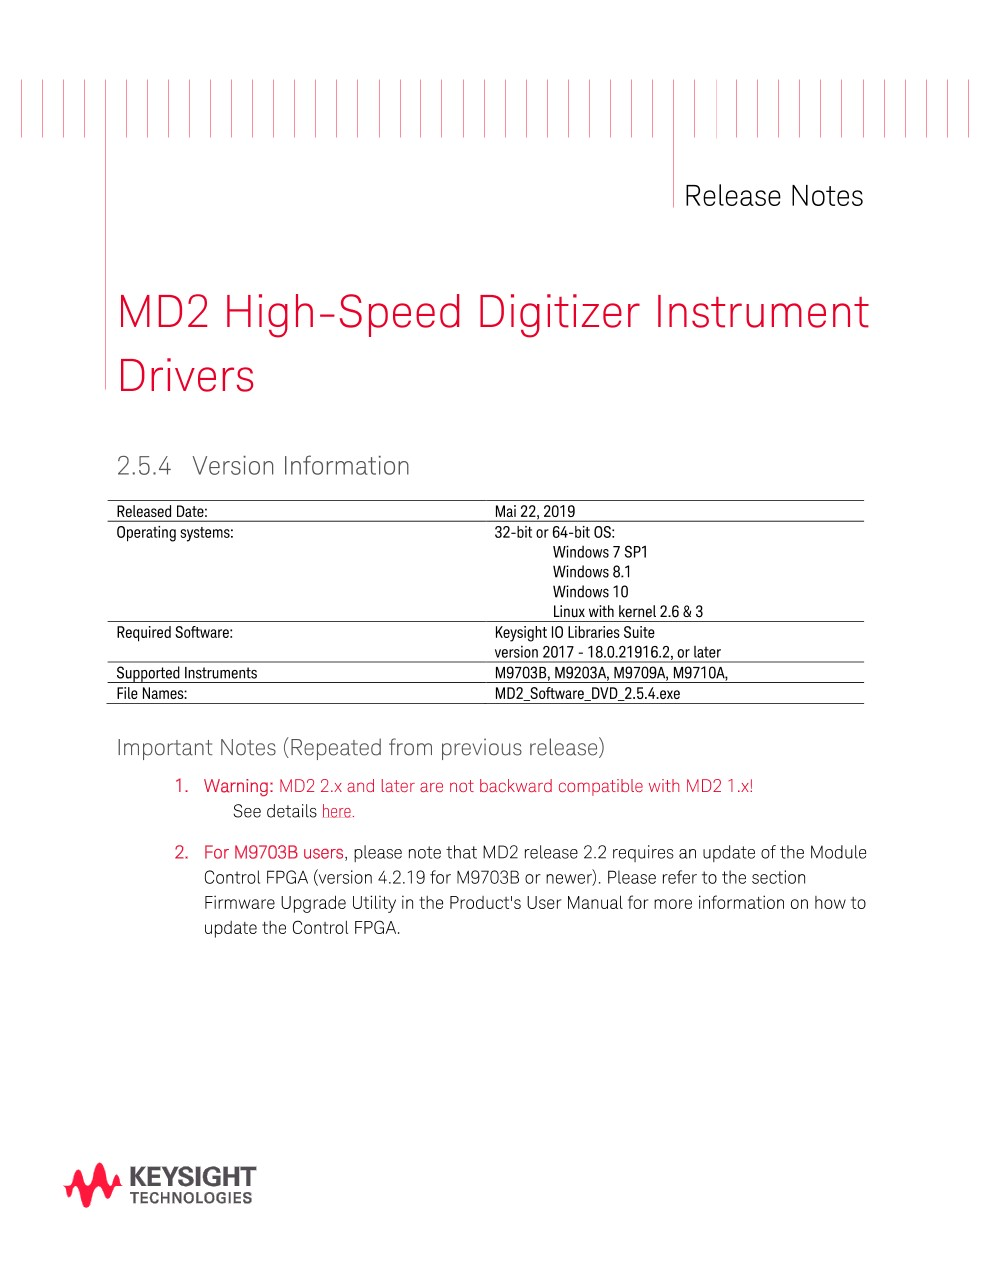 Release Notes for MD2 High-Speed Digitizer Software   Keysight